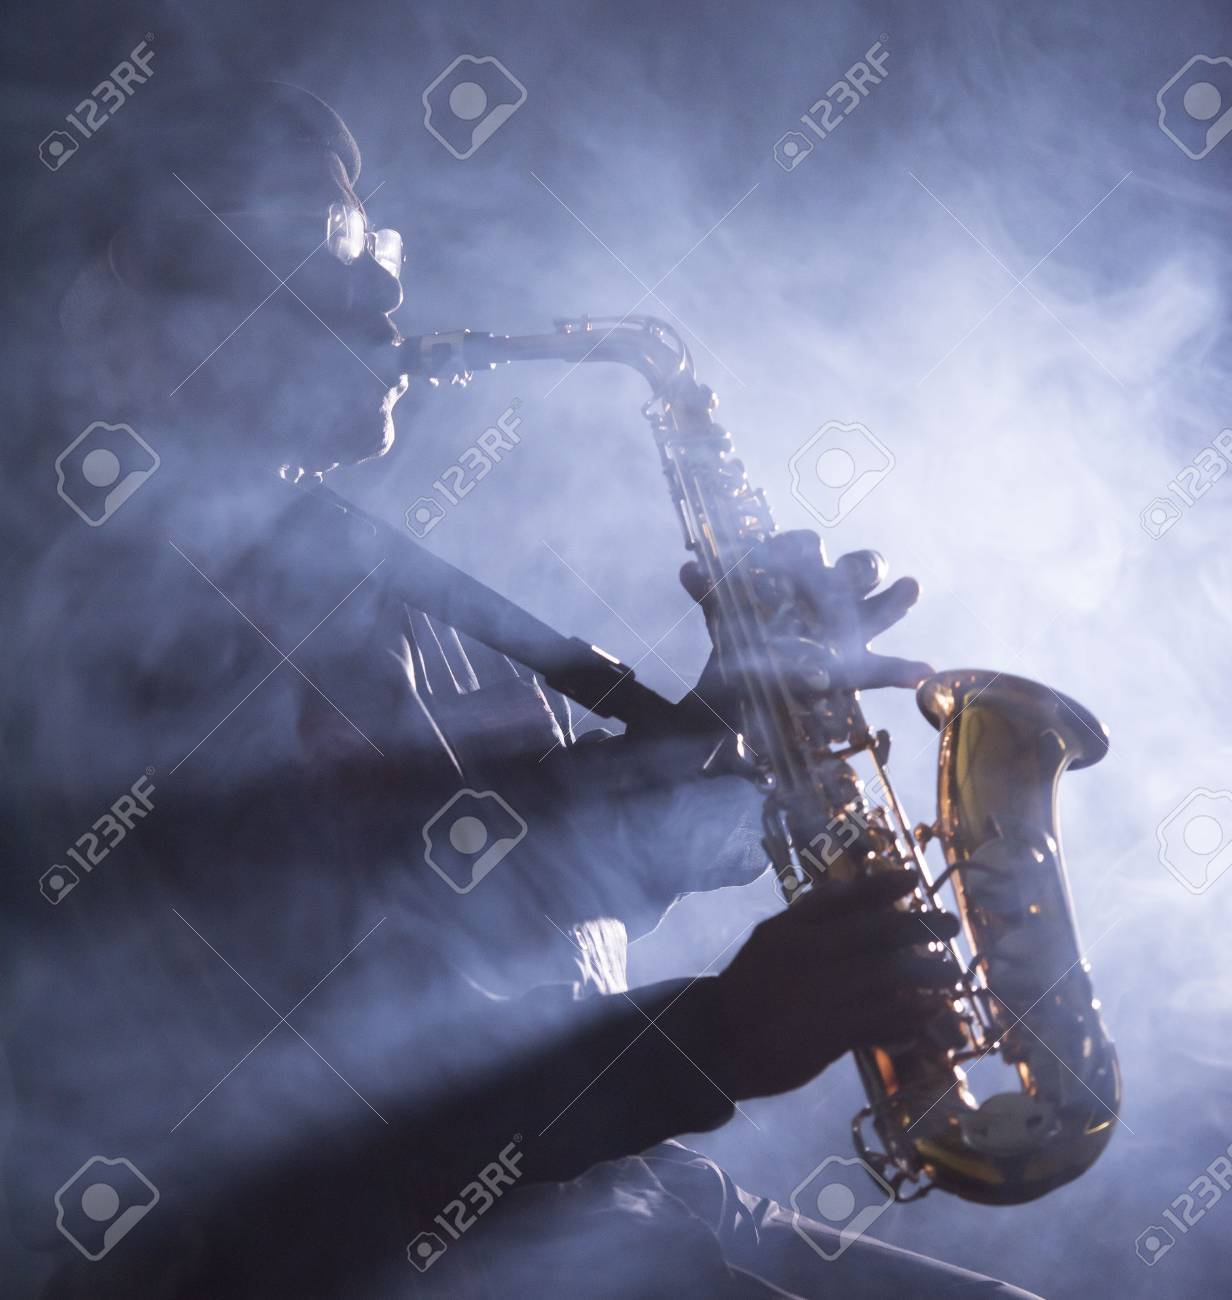 African jazz musician playing the saxophone - 38728311